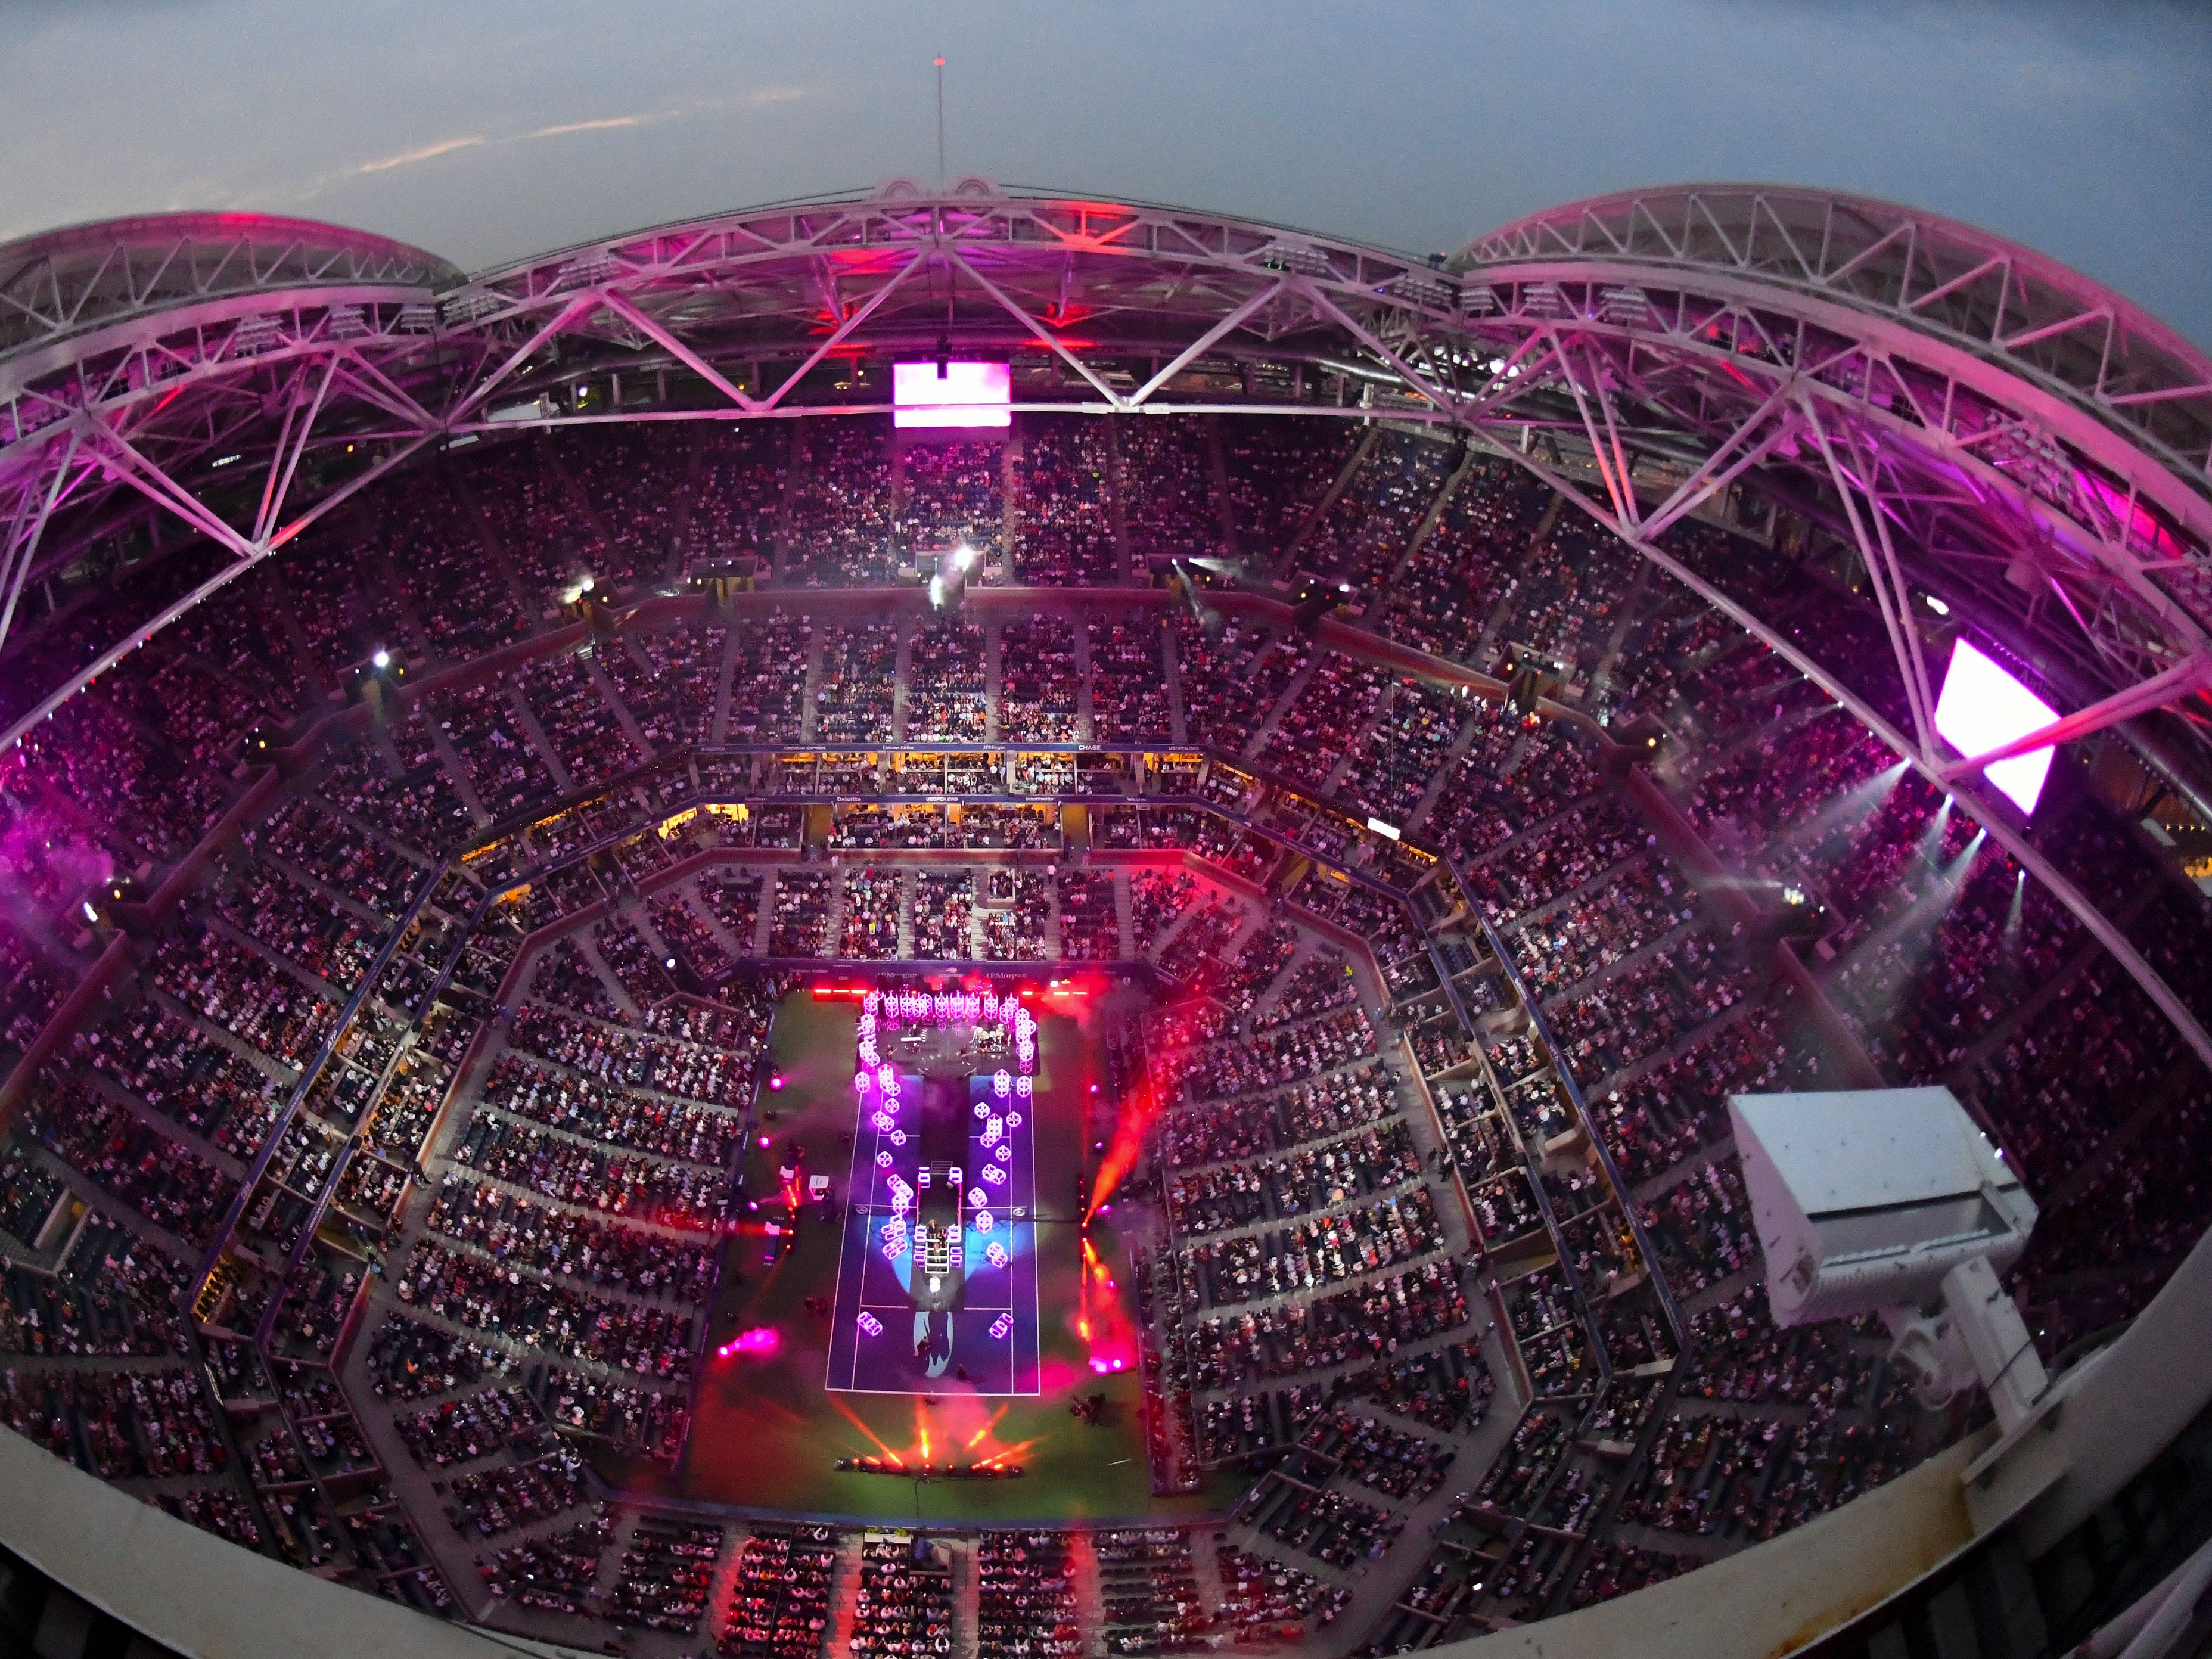 The opening ceremony in Arthur Ashe Stadium.